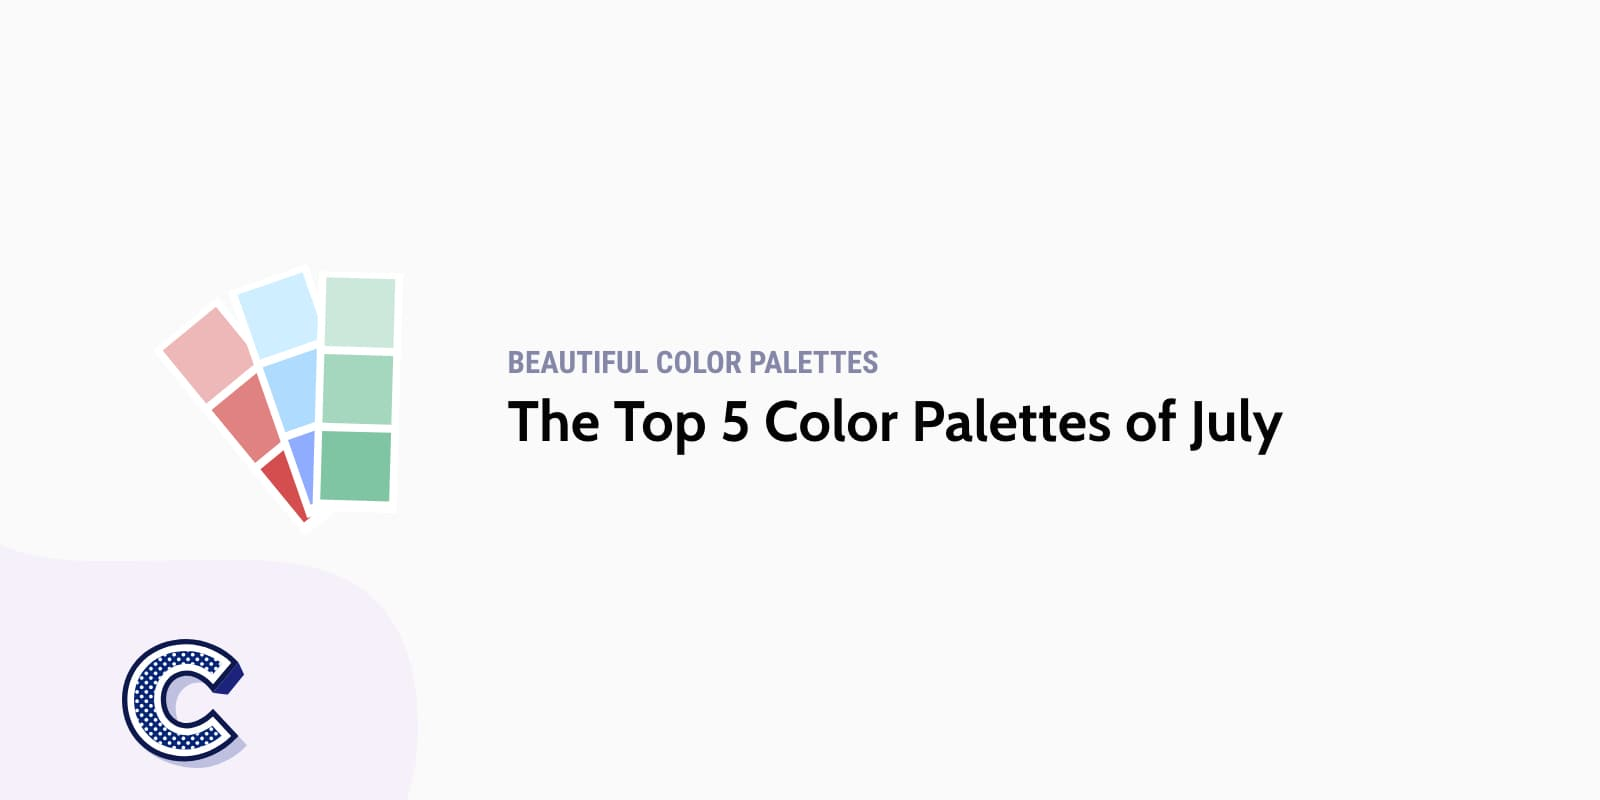 The Top 5 Color Palettes of July